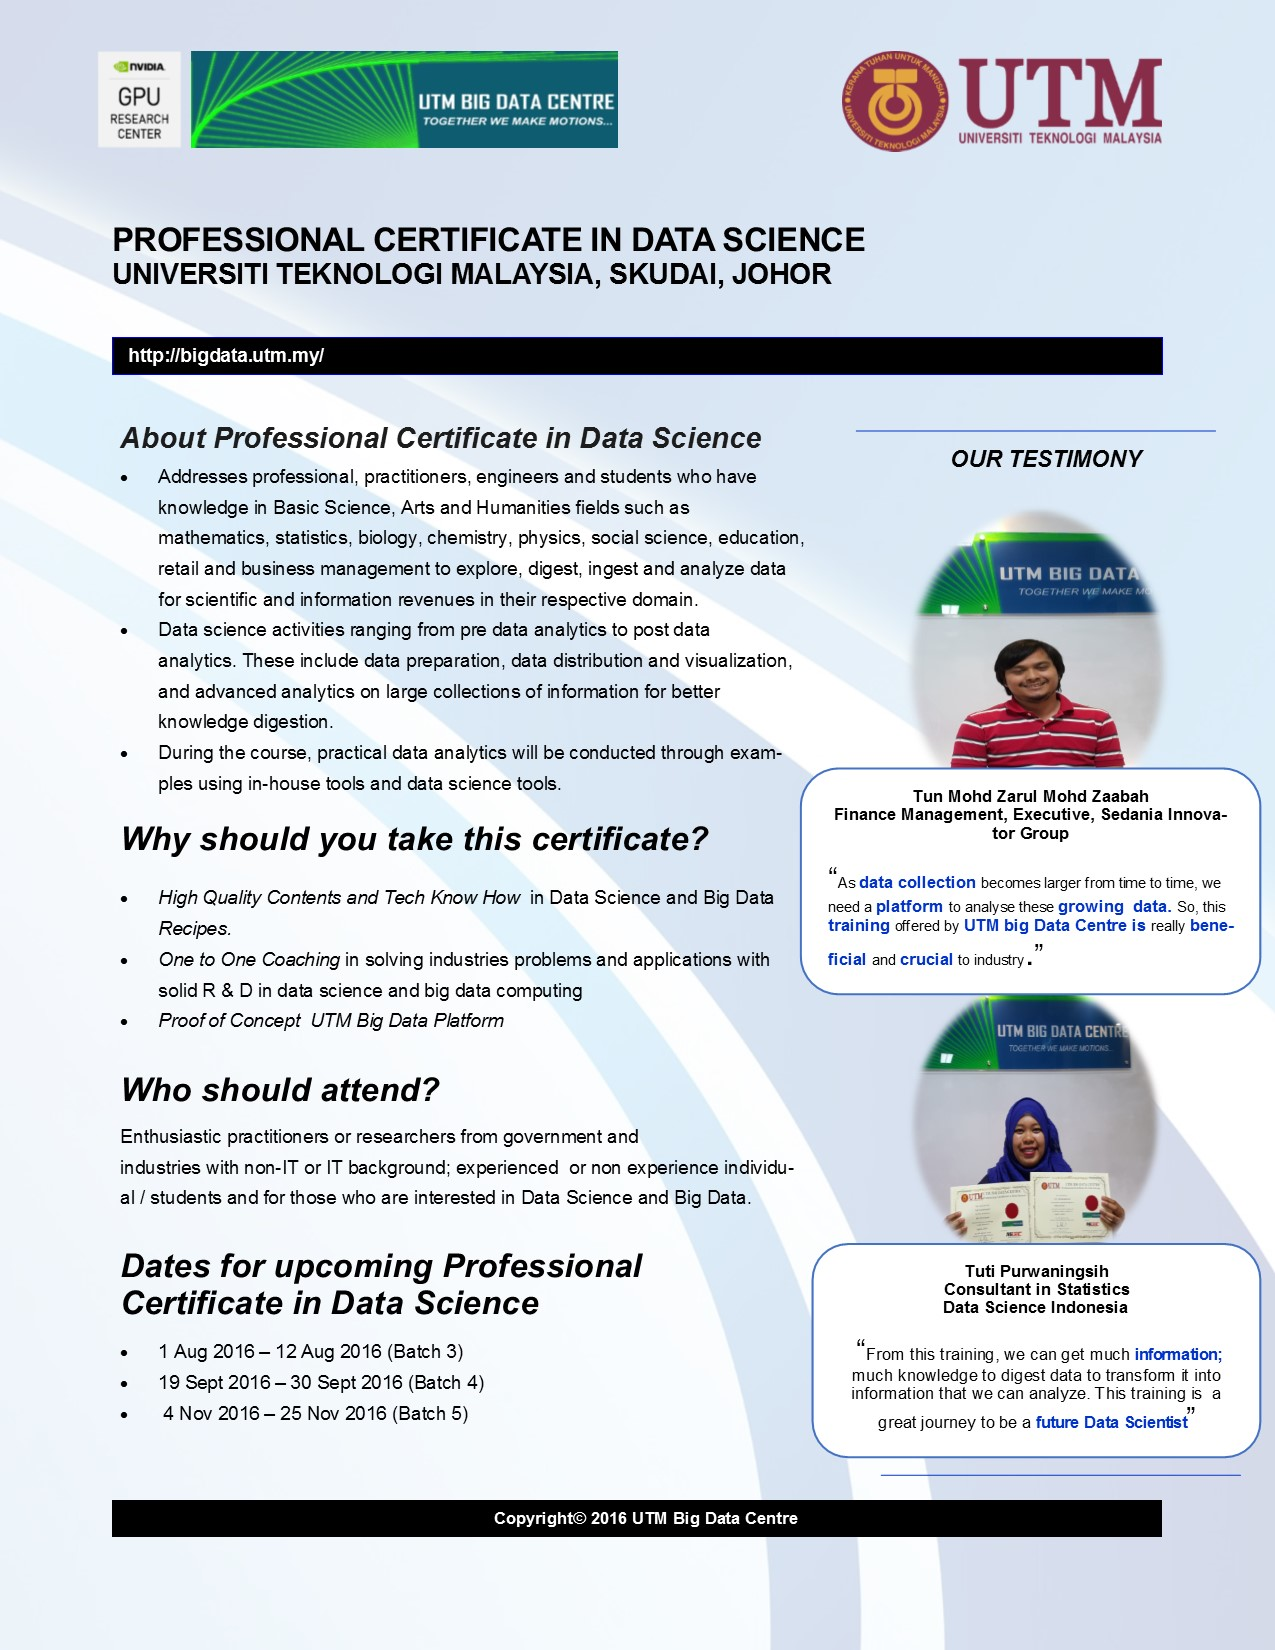 1 12 Aug 2016 Professional Certificate On Data Science Batch 3